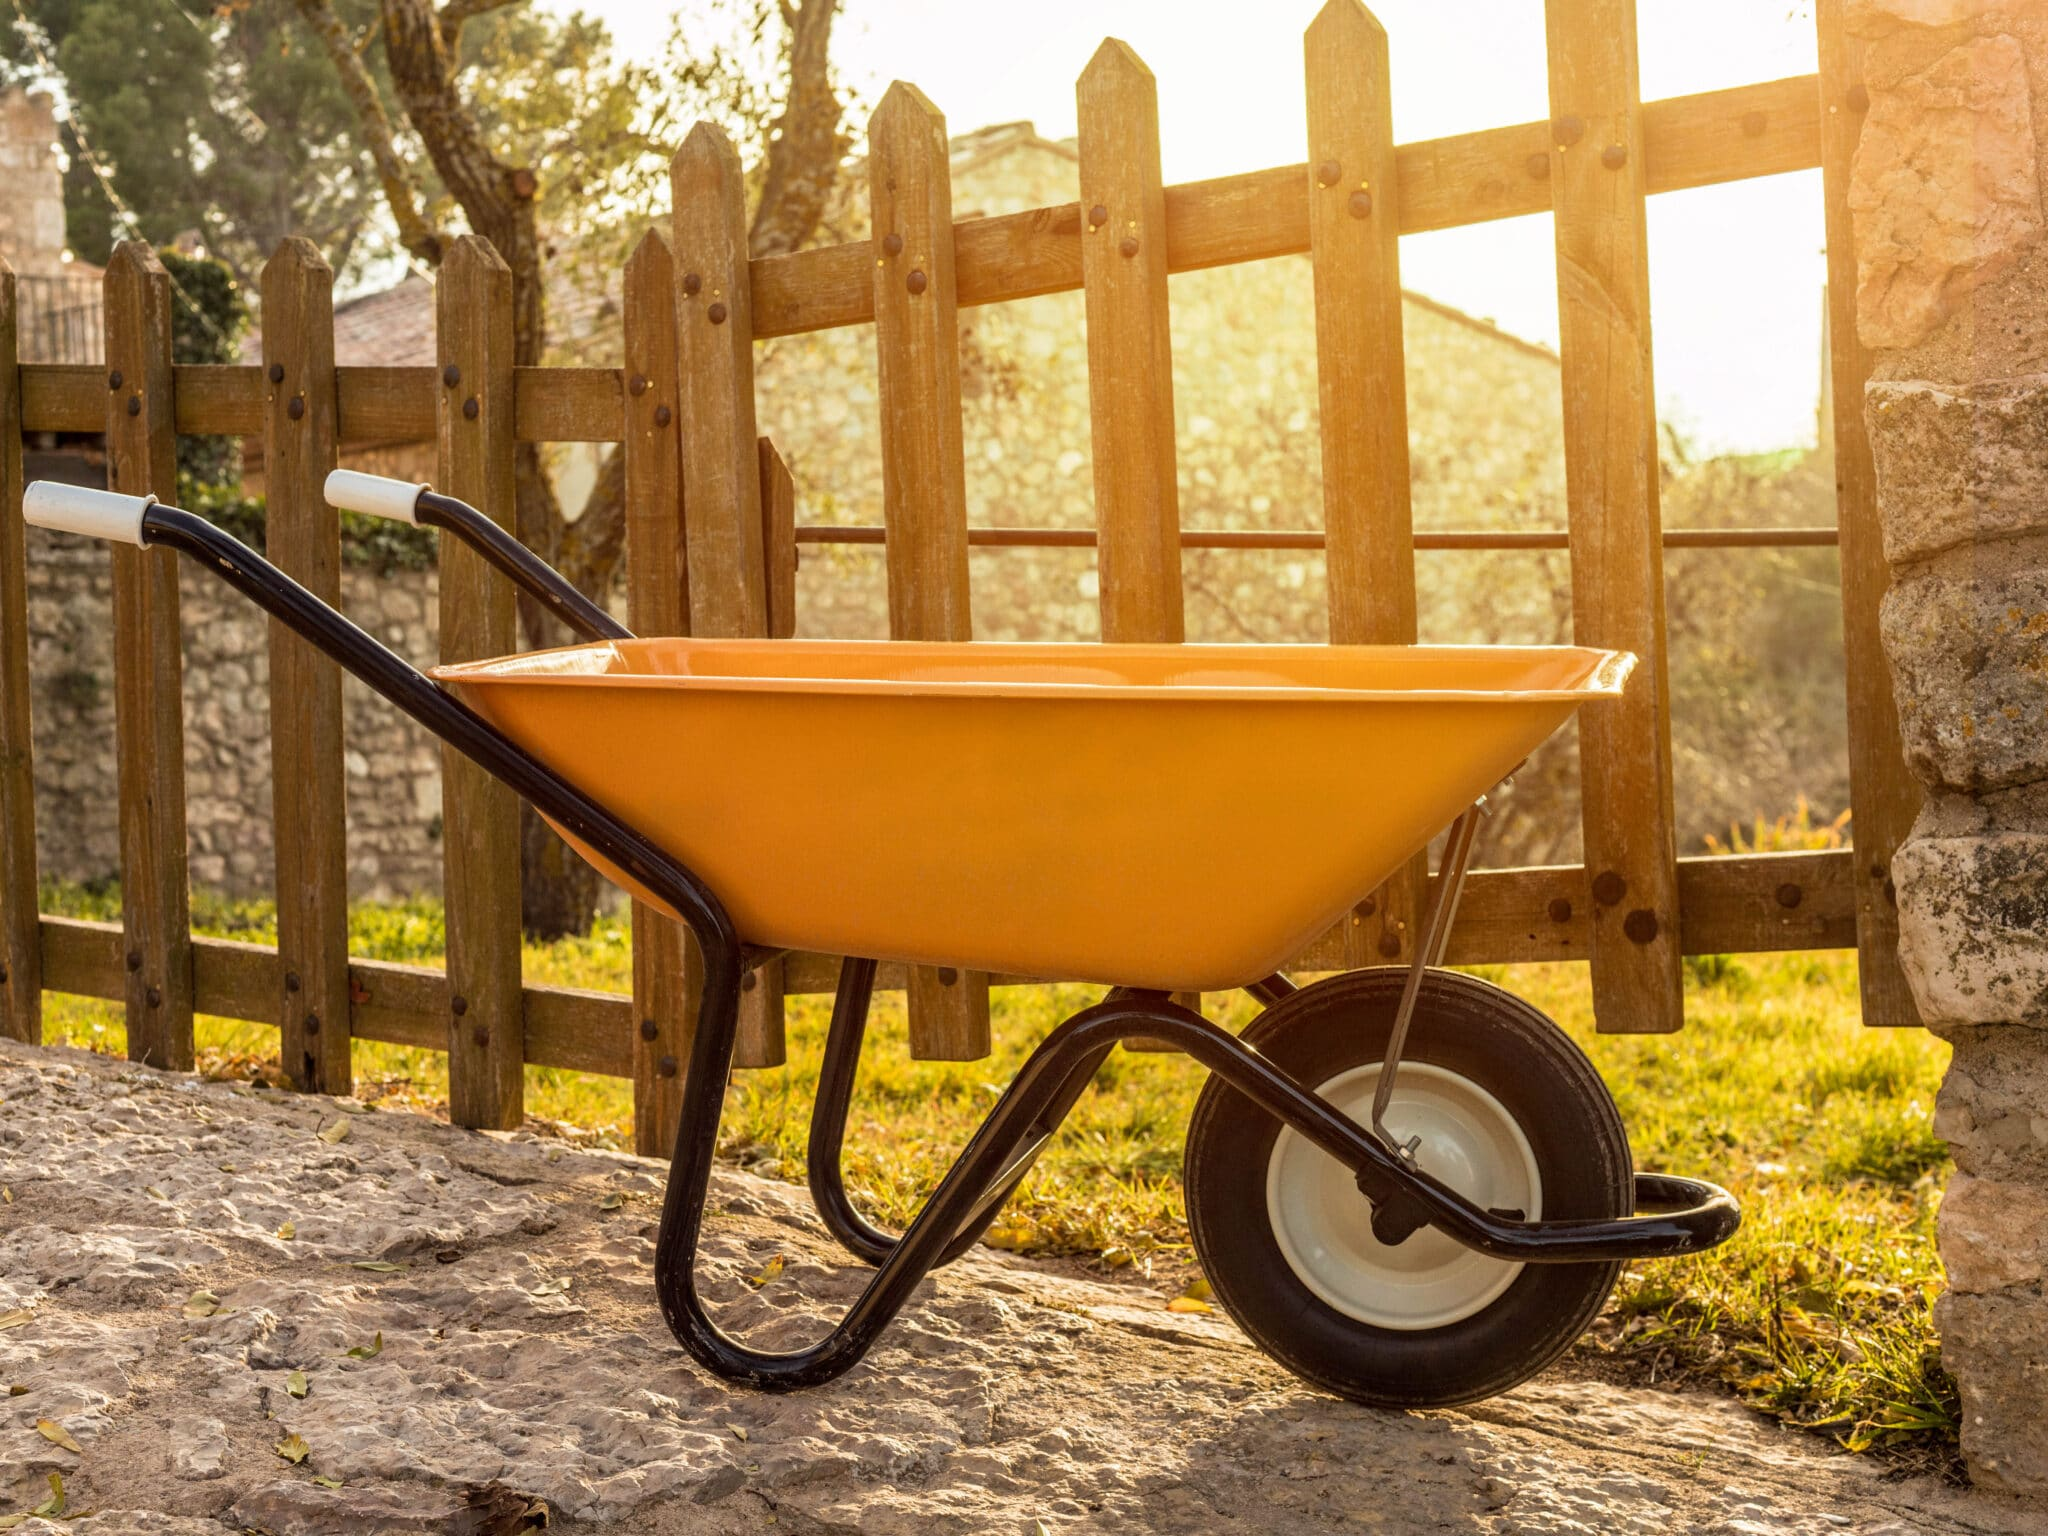 A little yellow wheelbarrow parked beside a picket fence on a stone path.